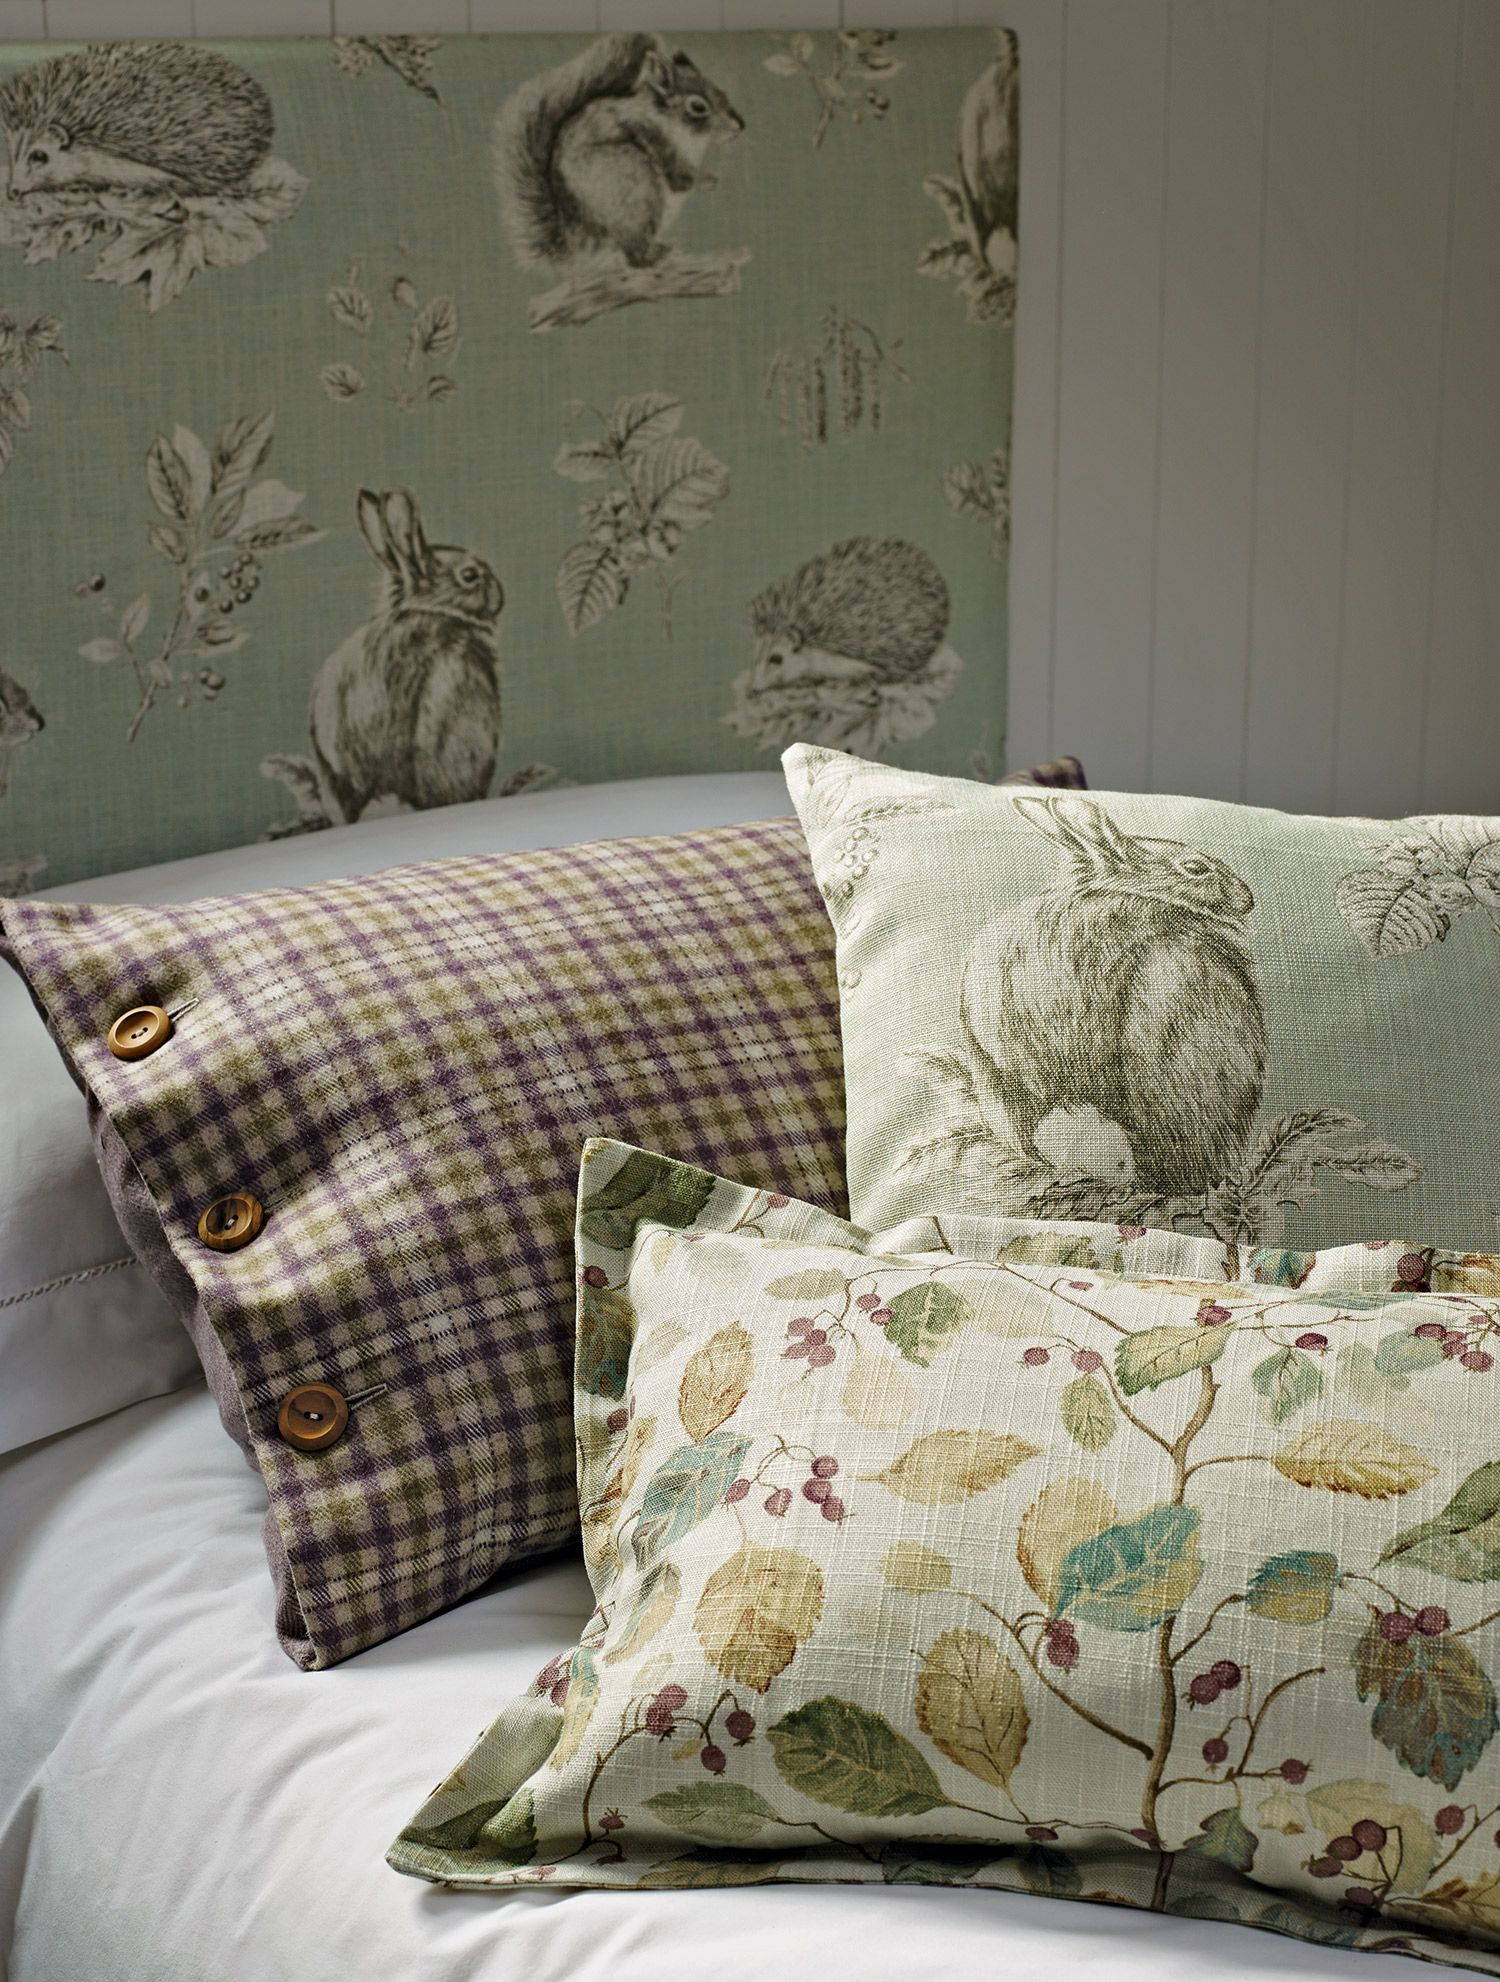 Sanderson Fabric Woodland Walk Collection All The Elements Of The Collection Work Together